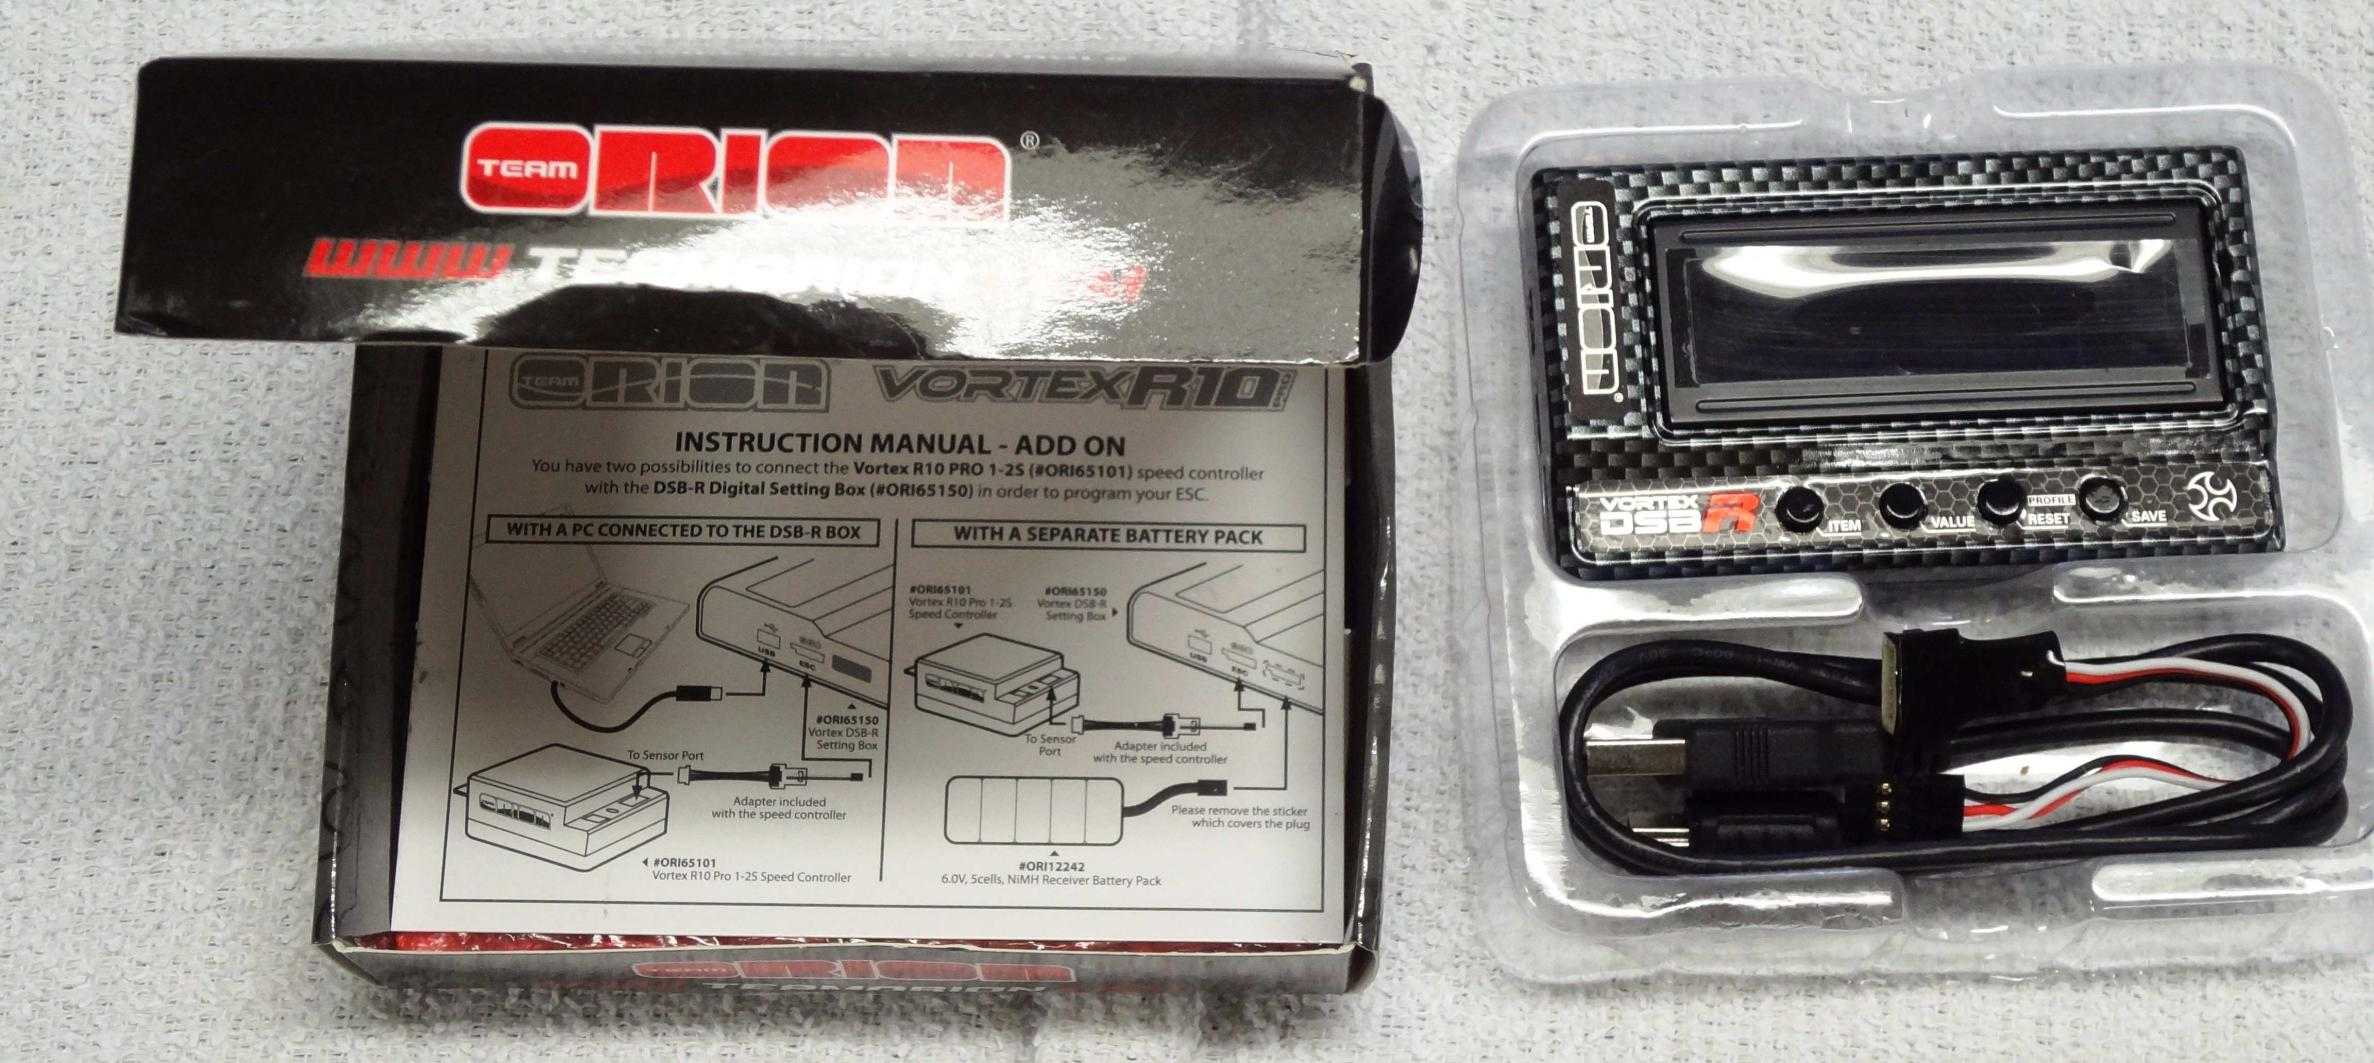 Team orion vortex r10. 1 competition brushless esc (170a, 2s.